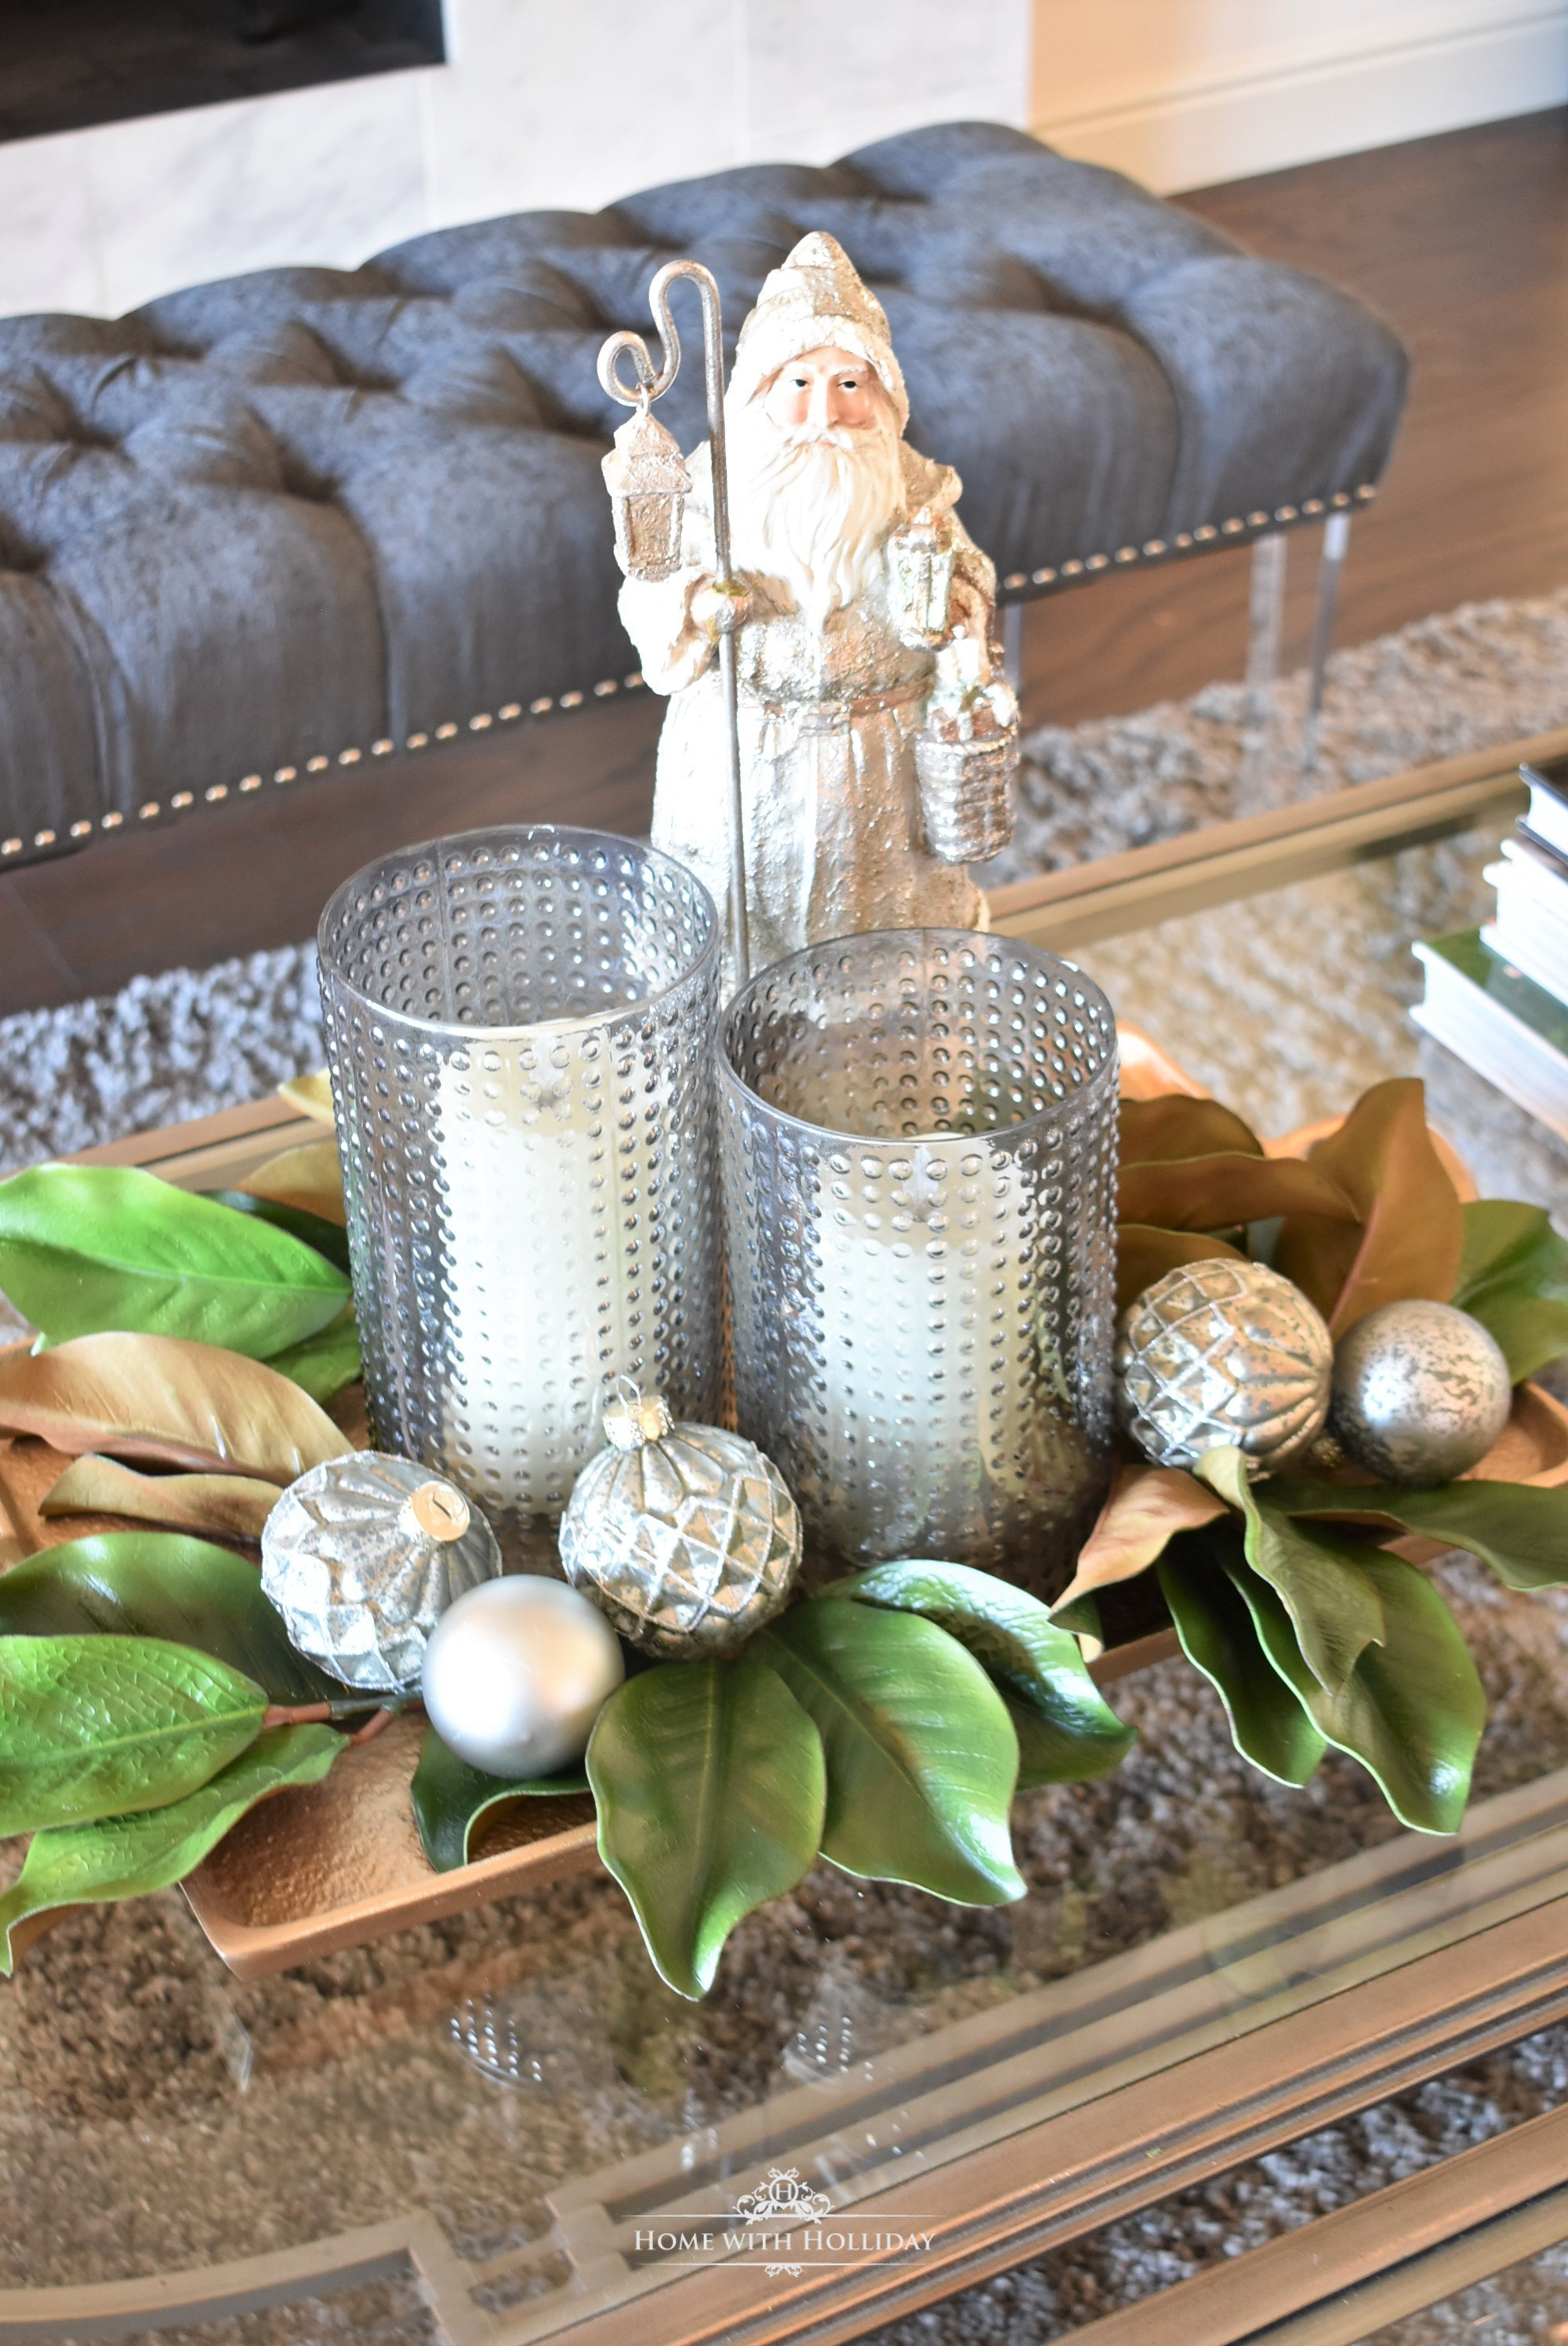 Our Christmas Home Tour - Home with Holliday